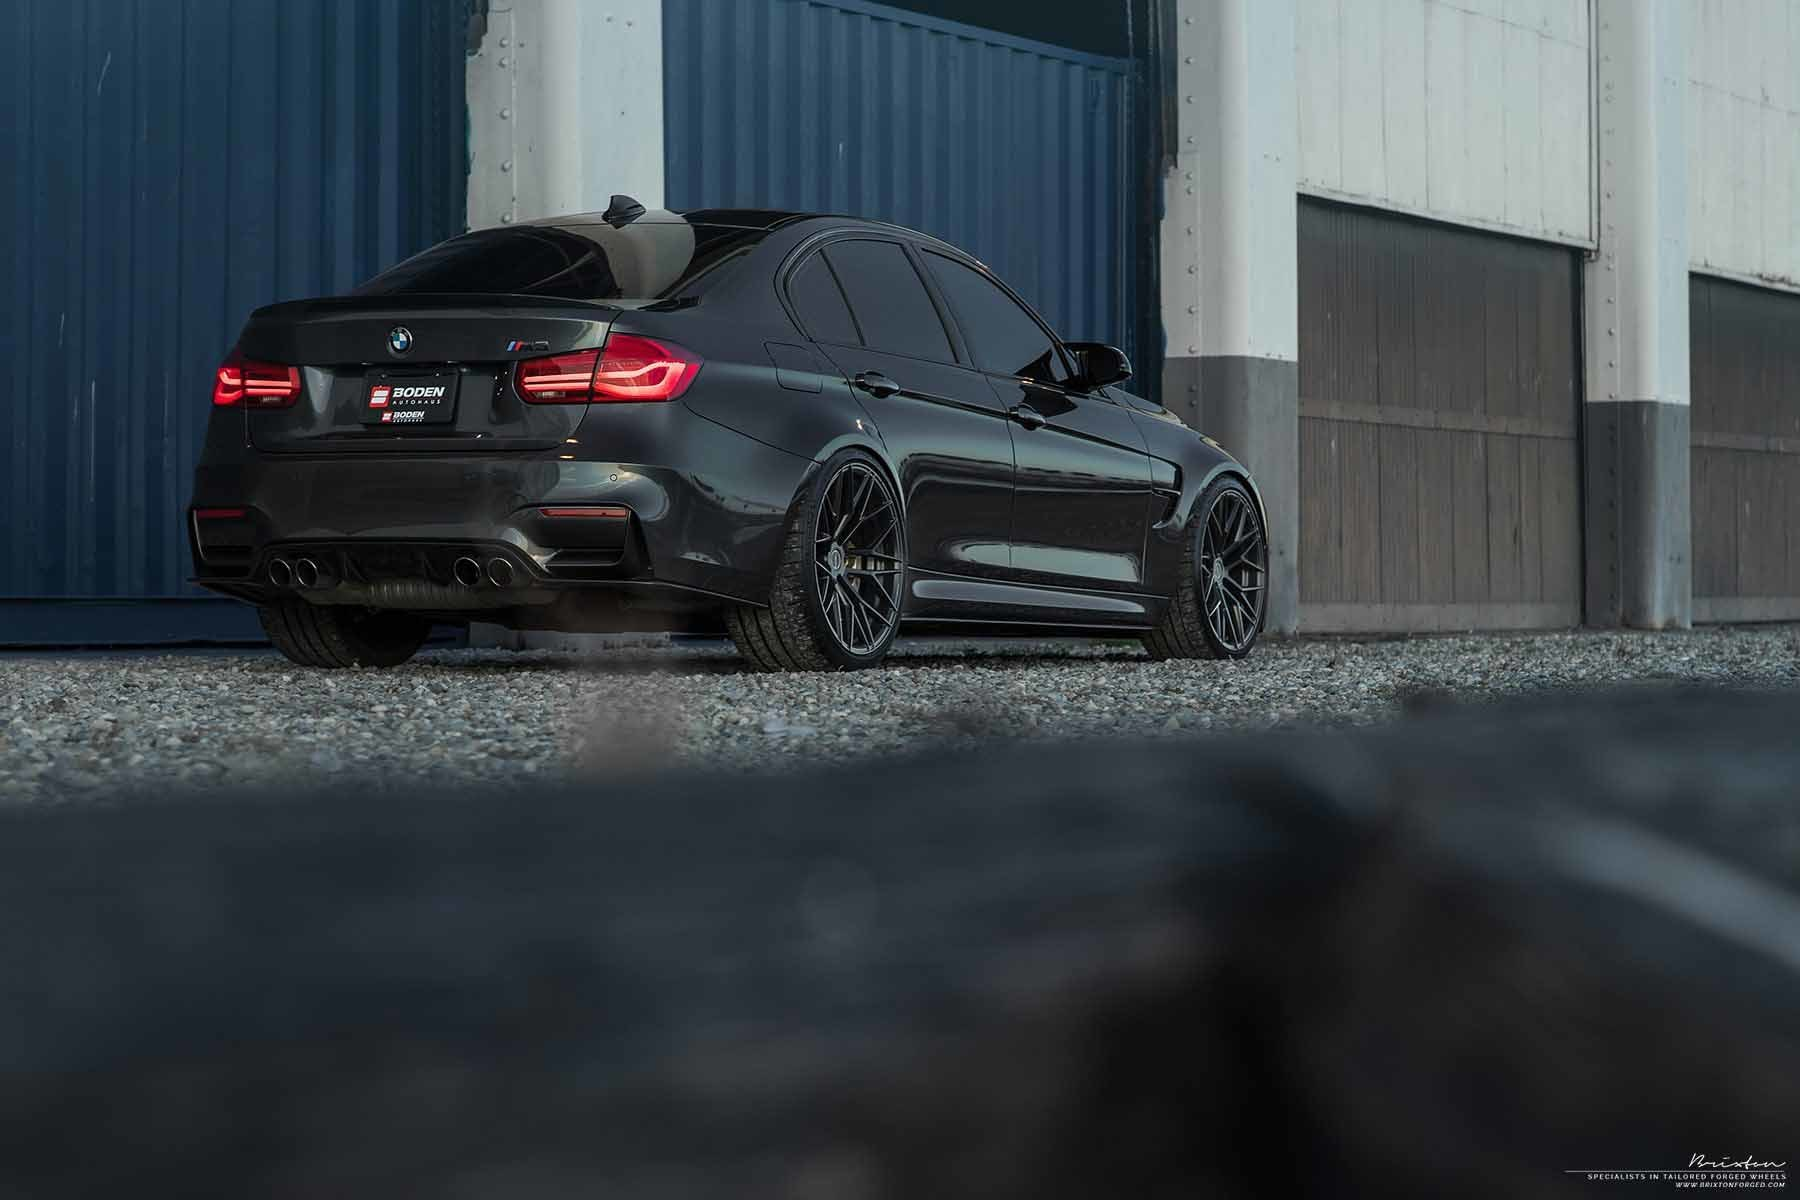 images-products-1-3018-232975306-mineral-grey-bmw-m4-f82-brixton-forged-cm10-radial-forged-concave-wheel-satin-black-01-1800x1200.jpg